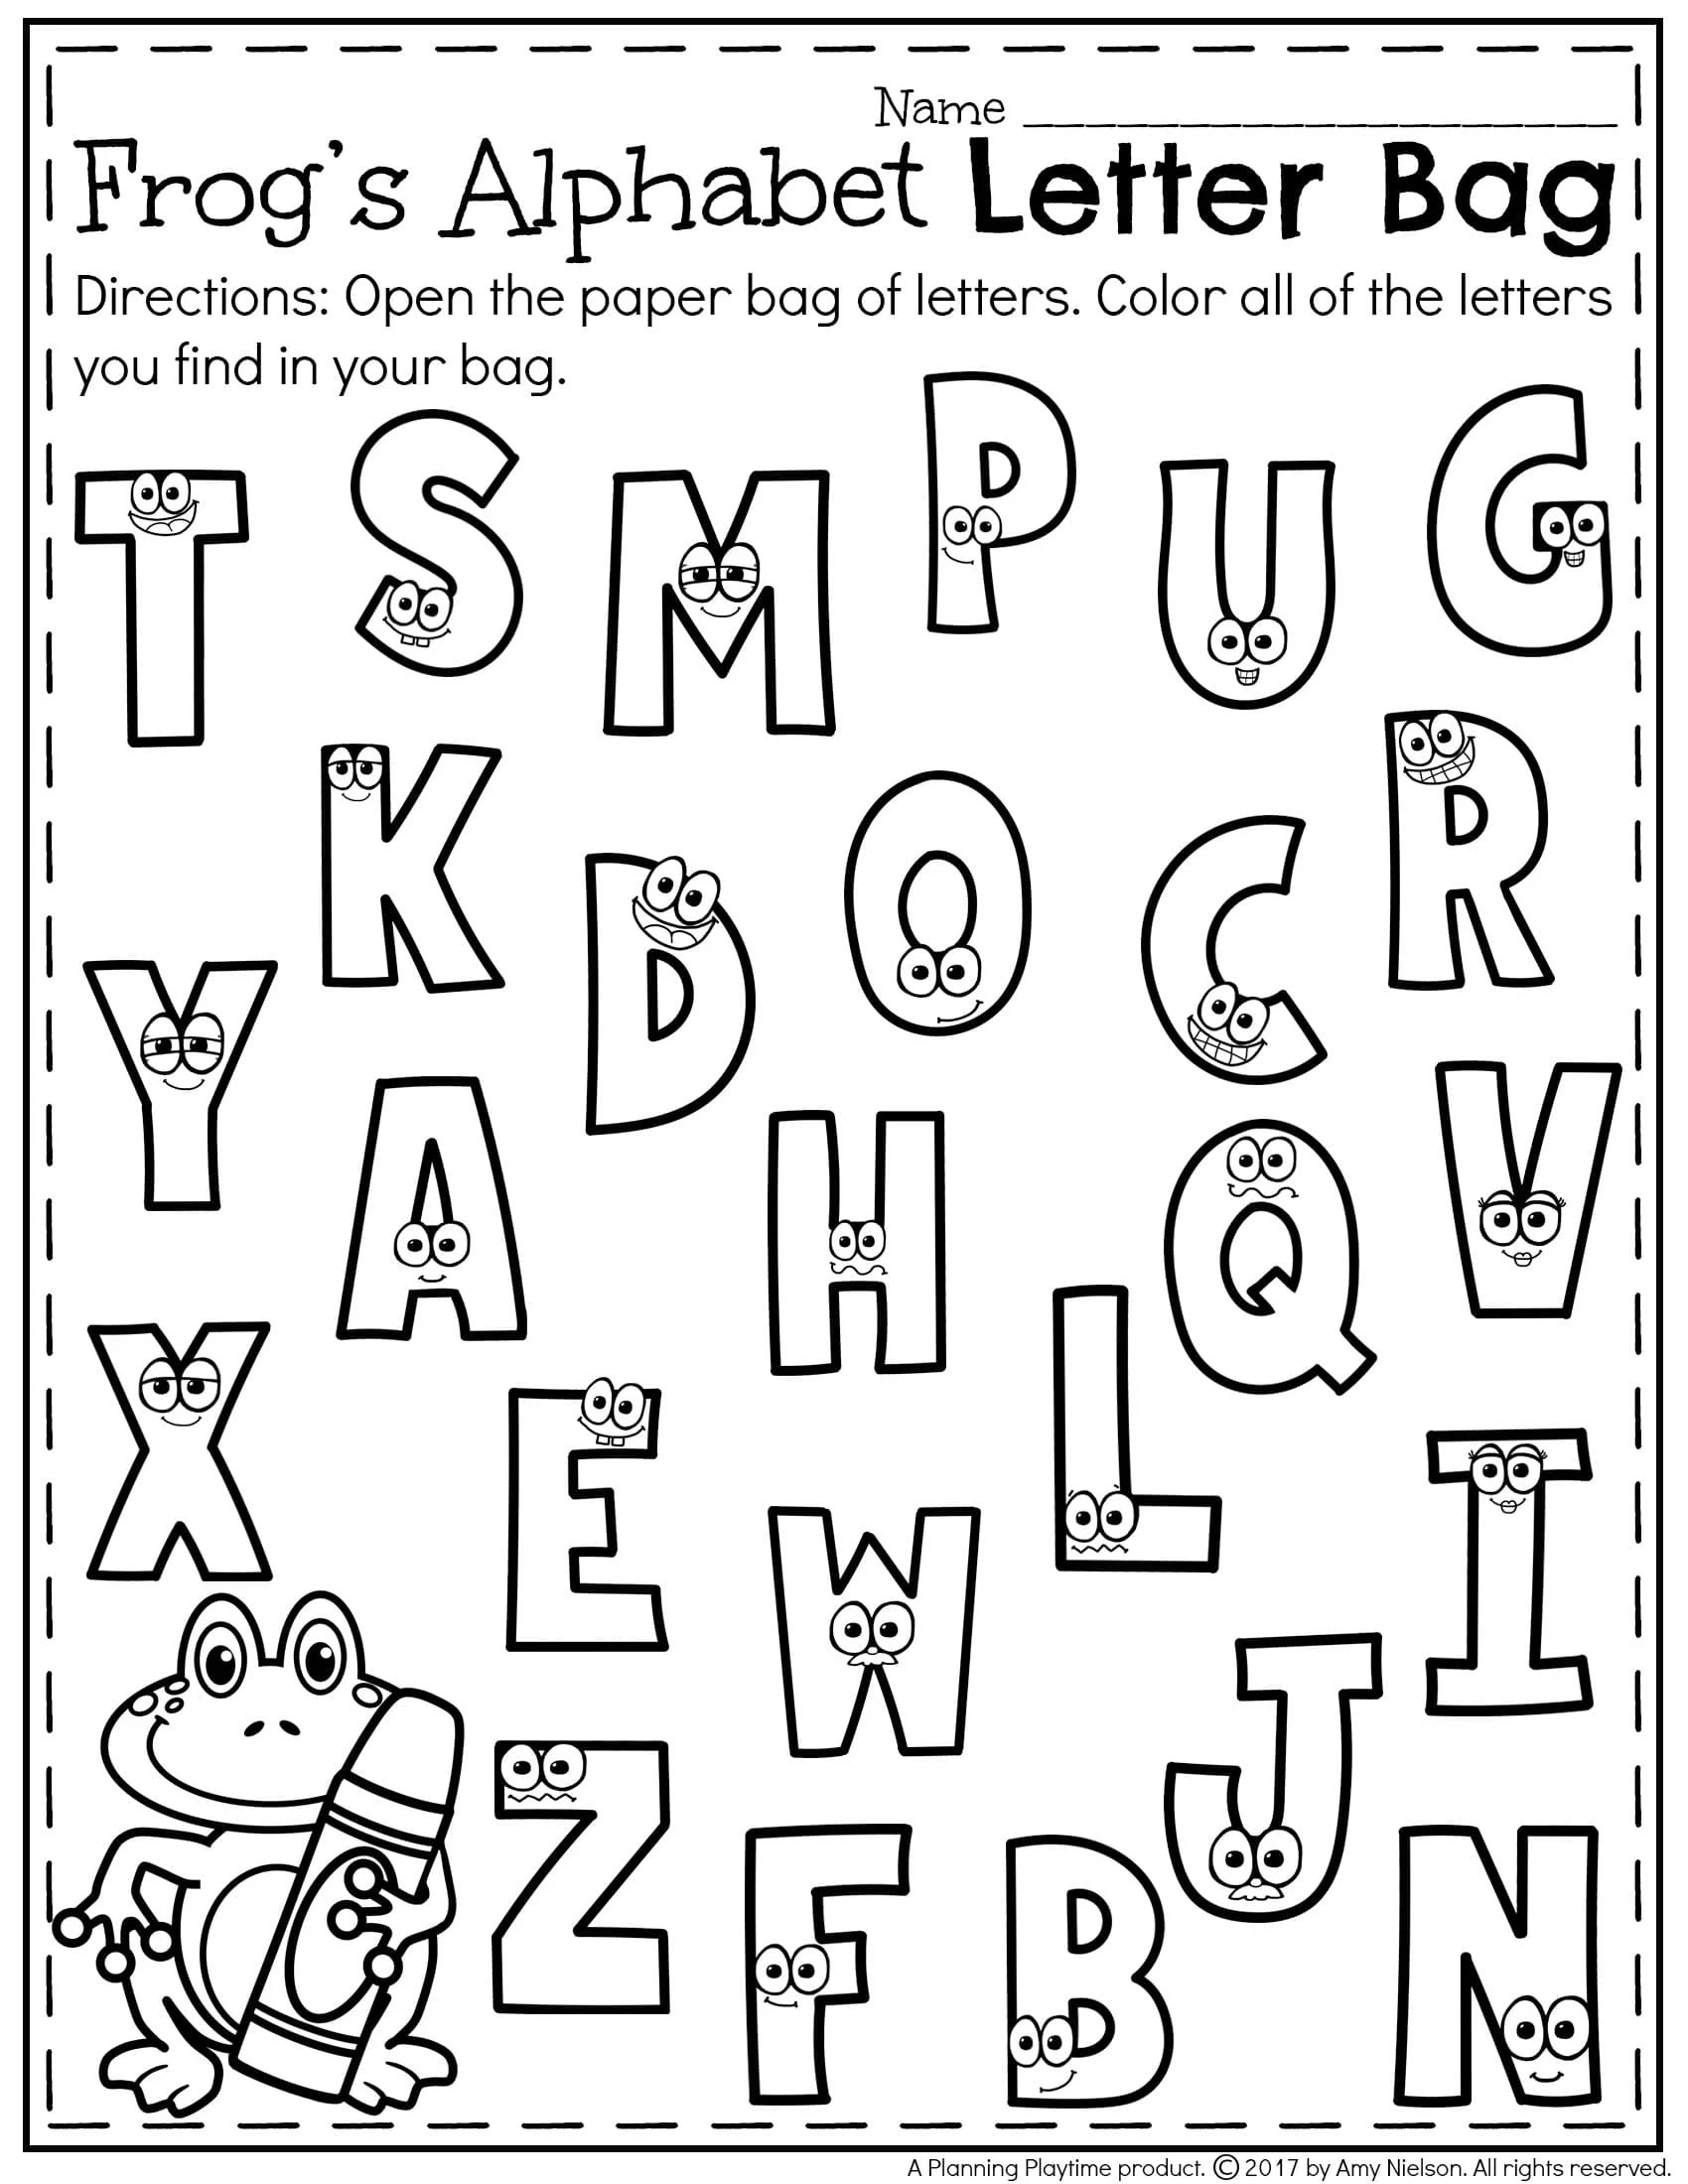 Worksheet Letter Identification Worksheets Worksheet Fun